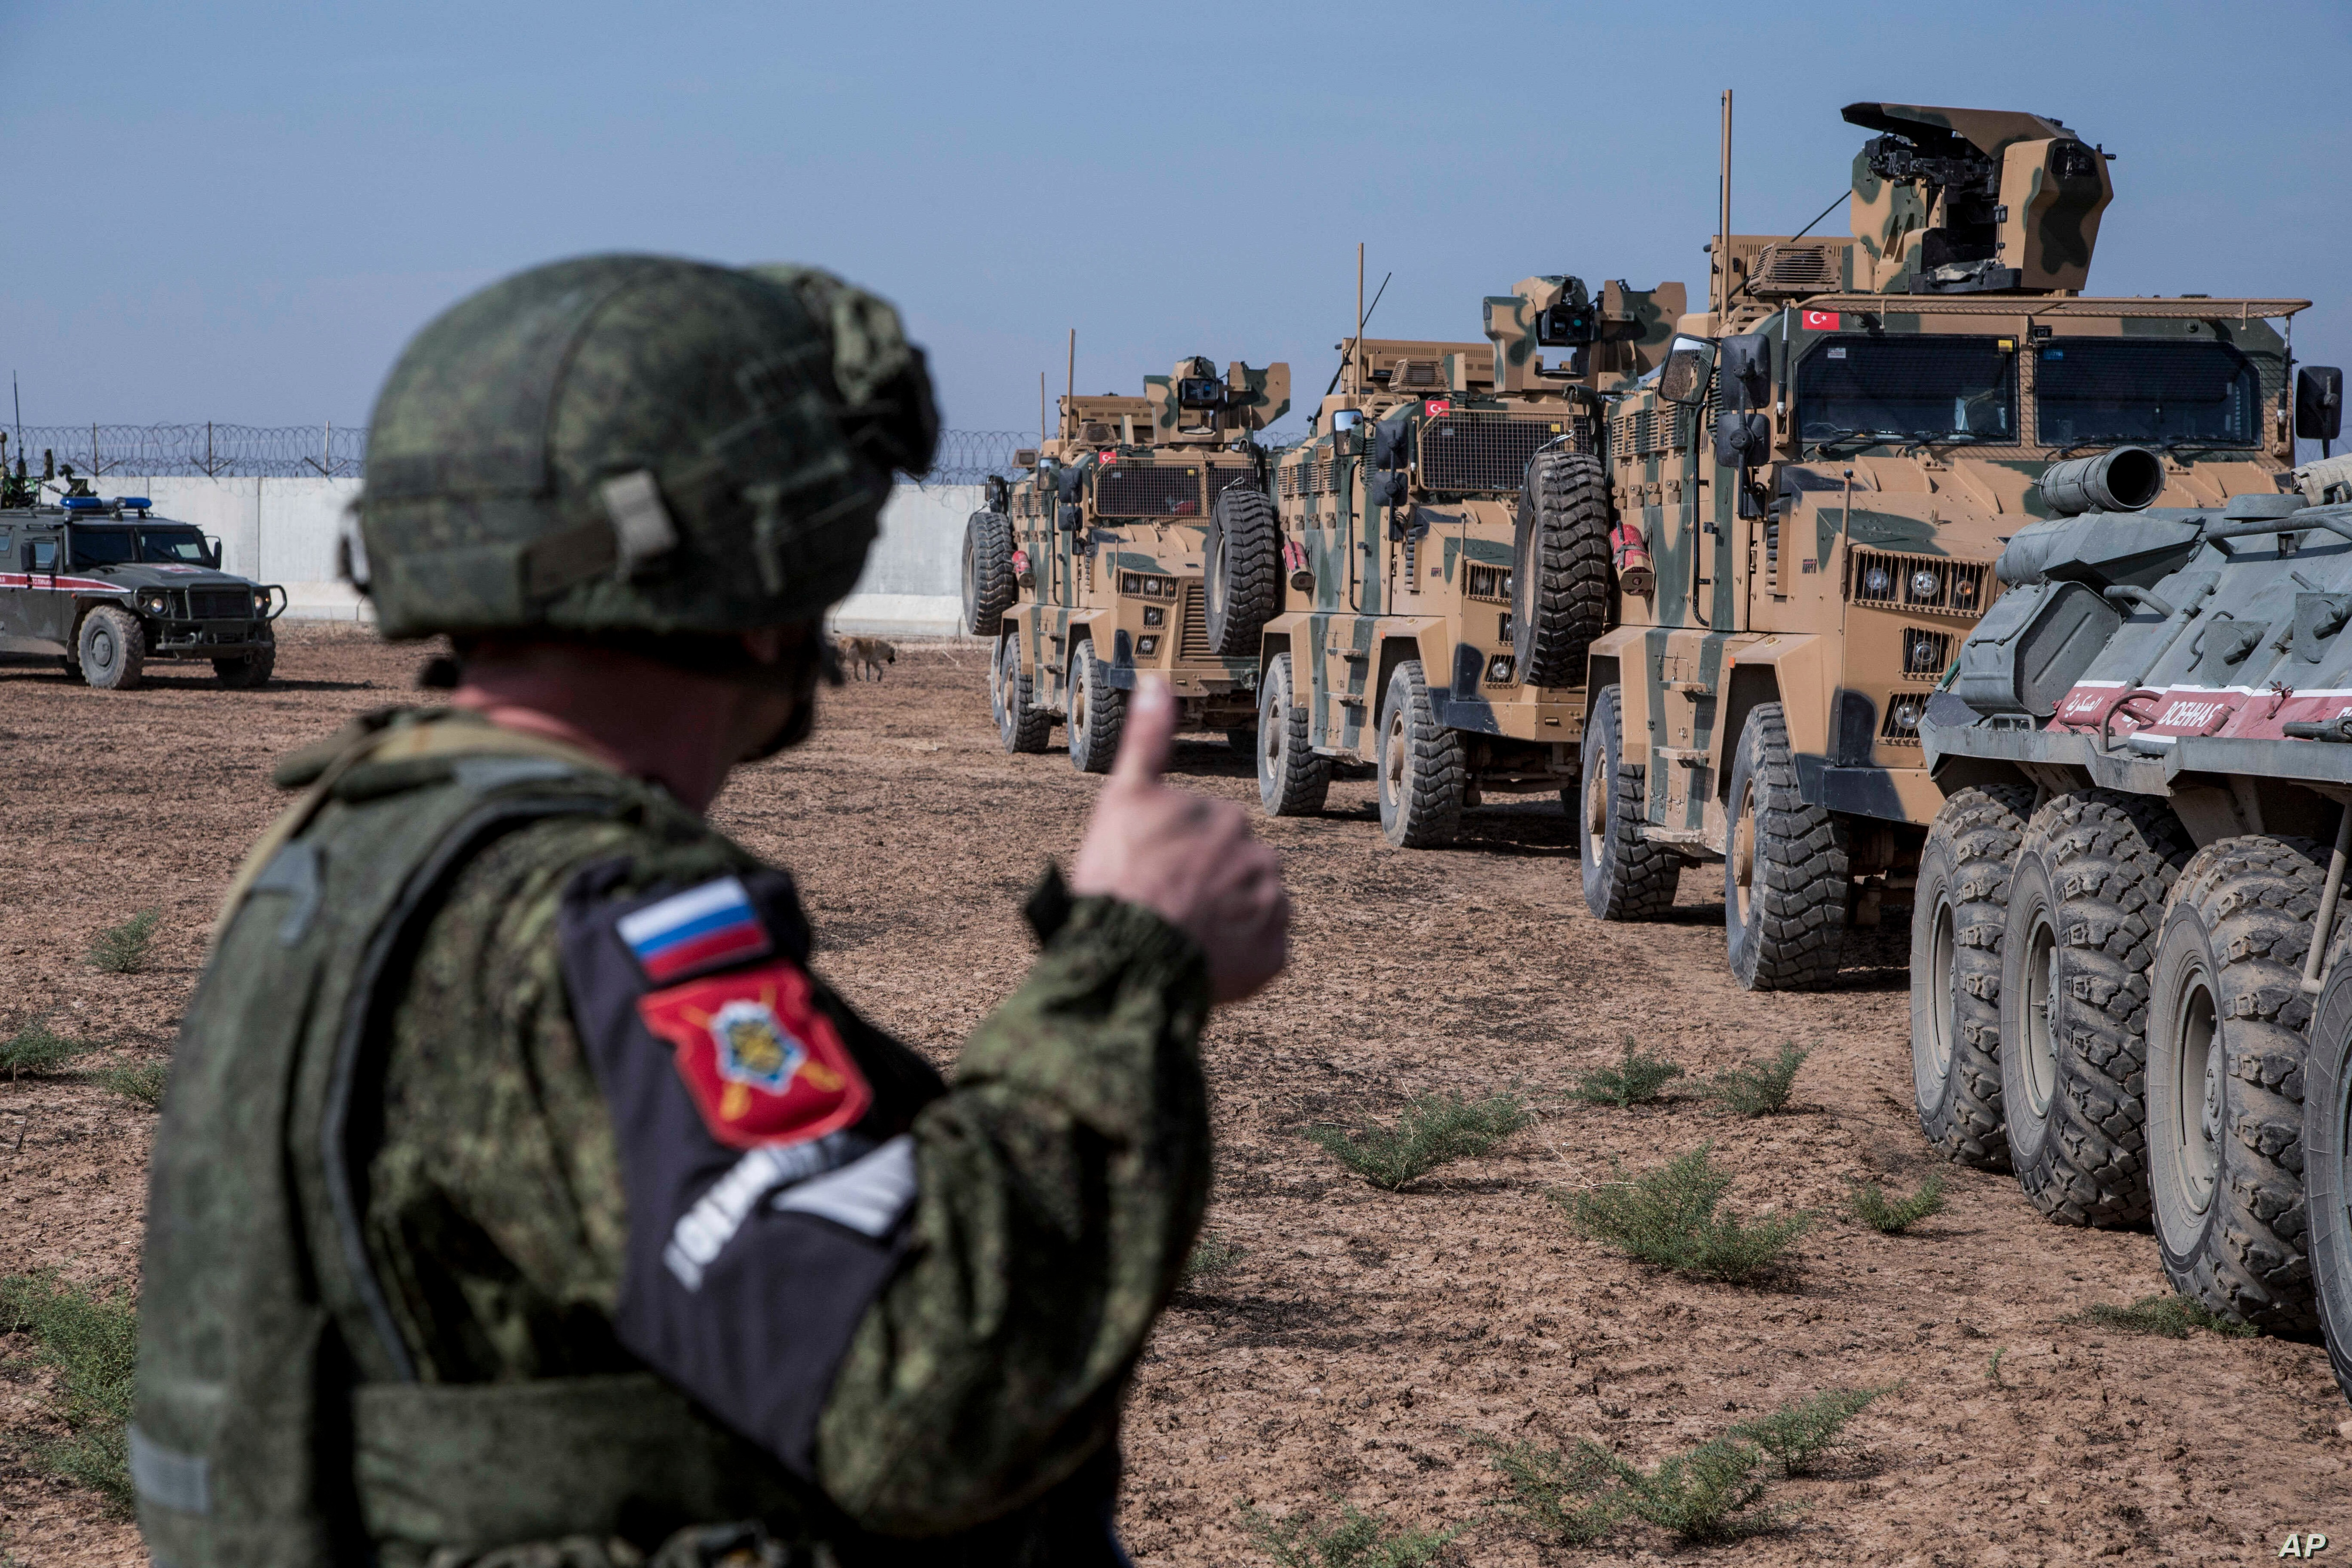 Reports: Tensions Grow Between US, Russian Forces in